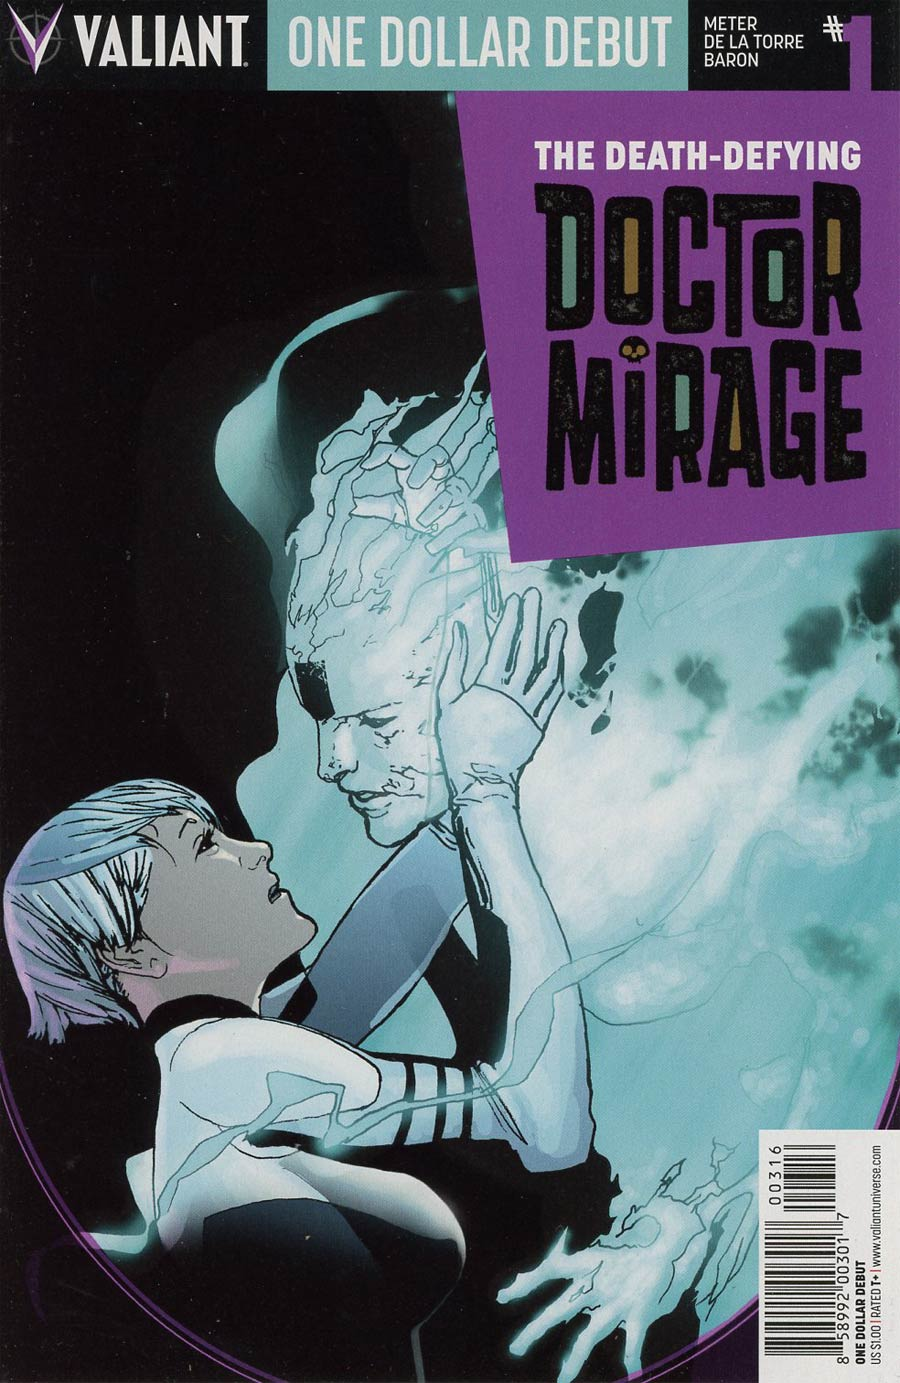 Death-Defying Doctor Mirage #1 Cover E One Dollar Debut Edition